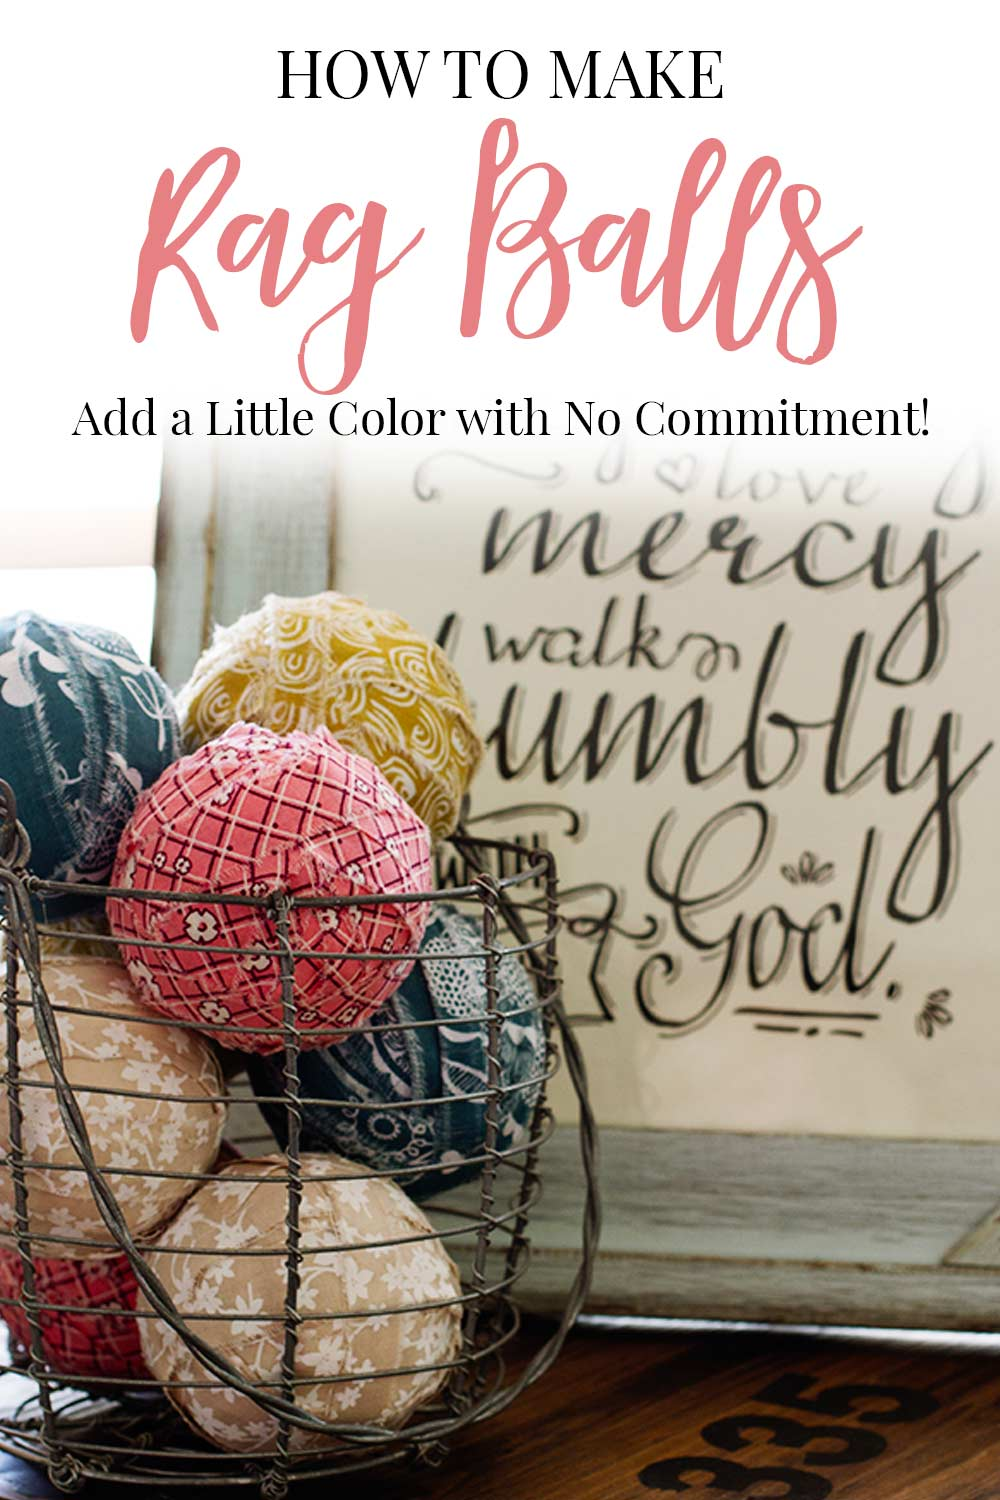 How to Make Rag Balls to Add a Little Color with No Commitment!